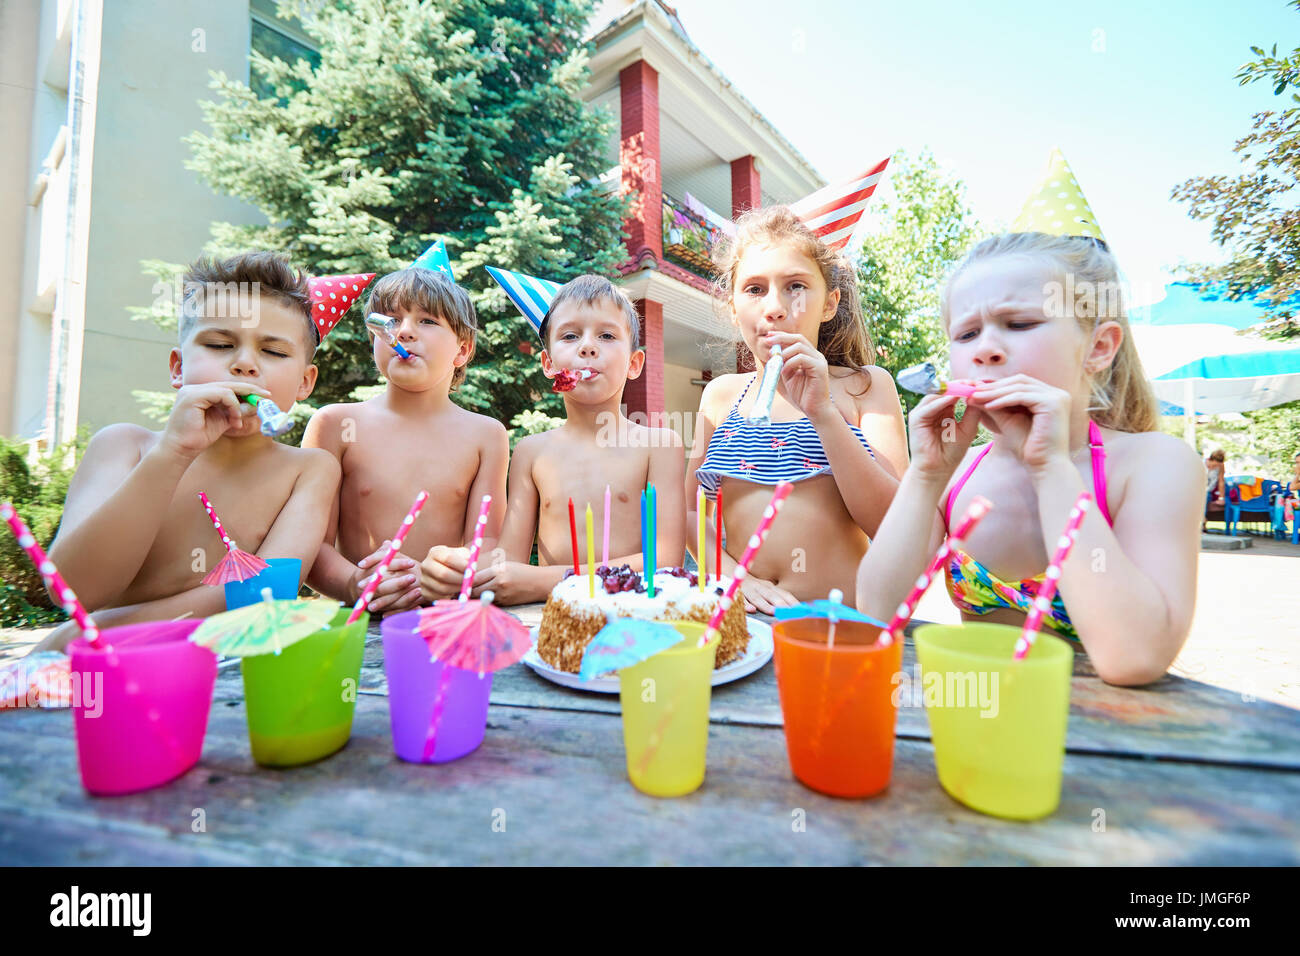 Birthday with children in hats in the summer - Stock Image